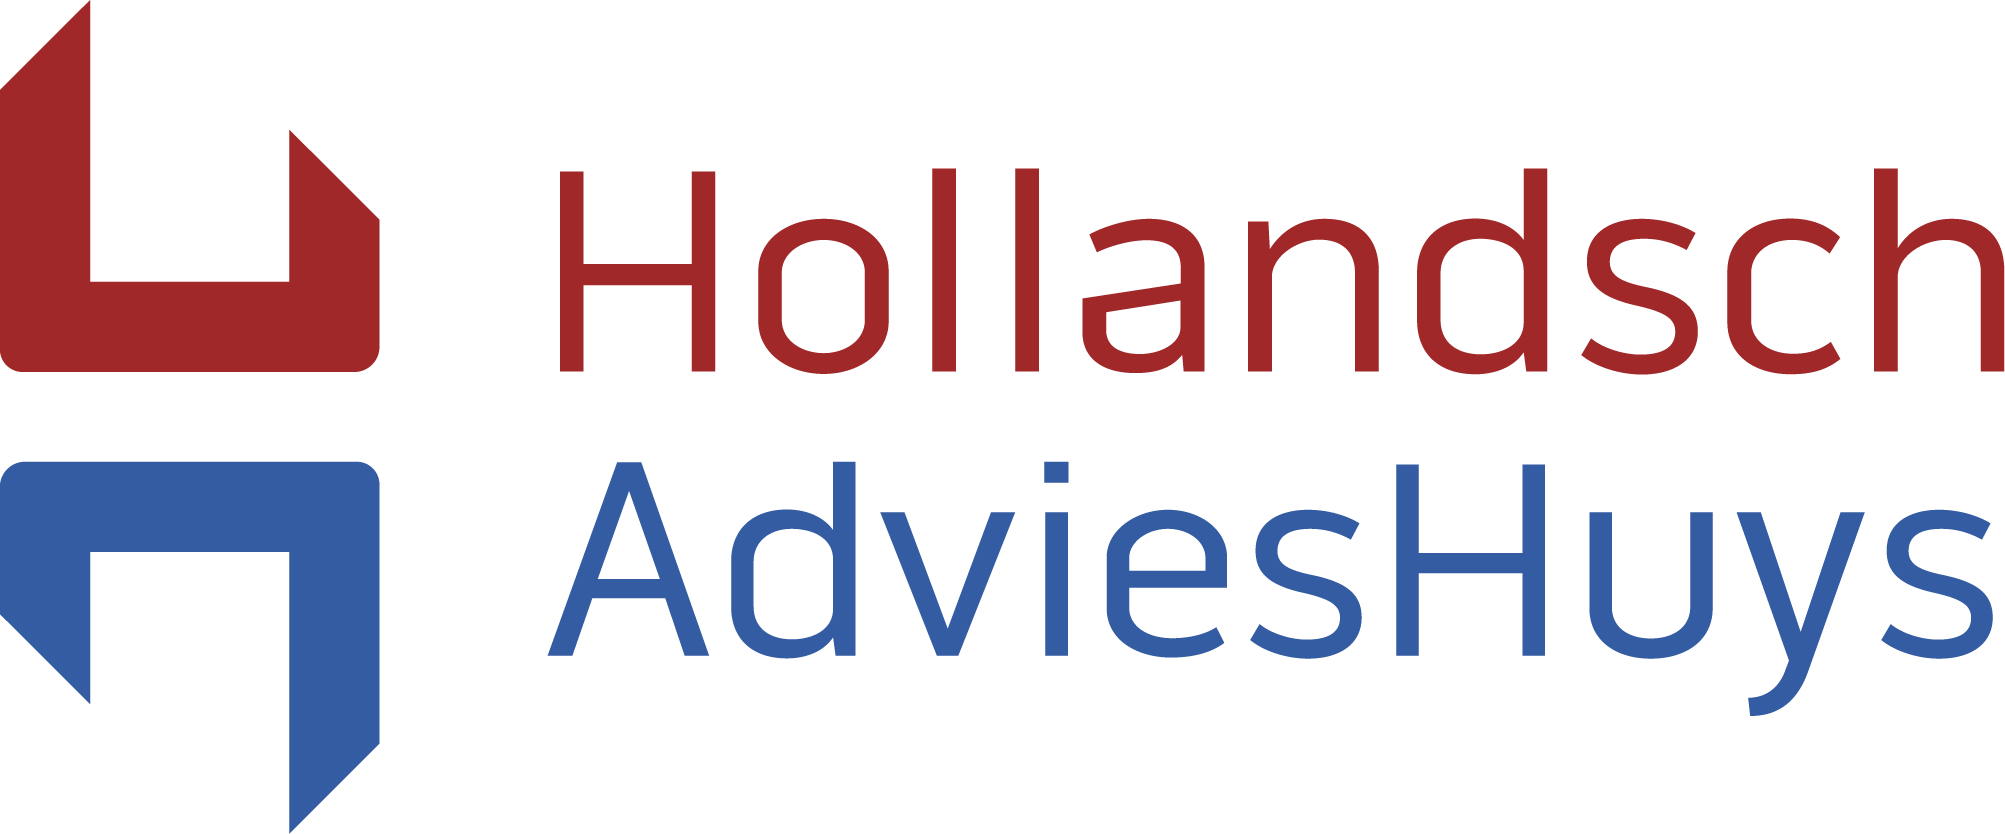 Hollandsch AdviesHuys